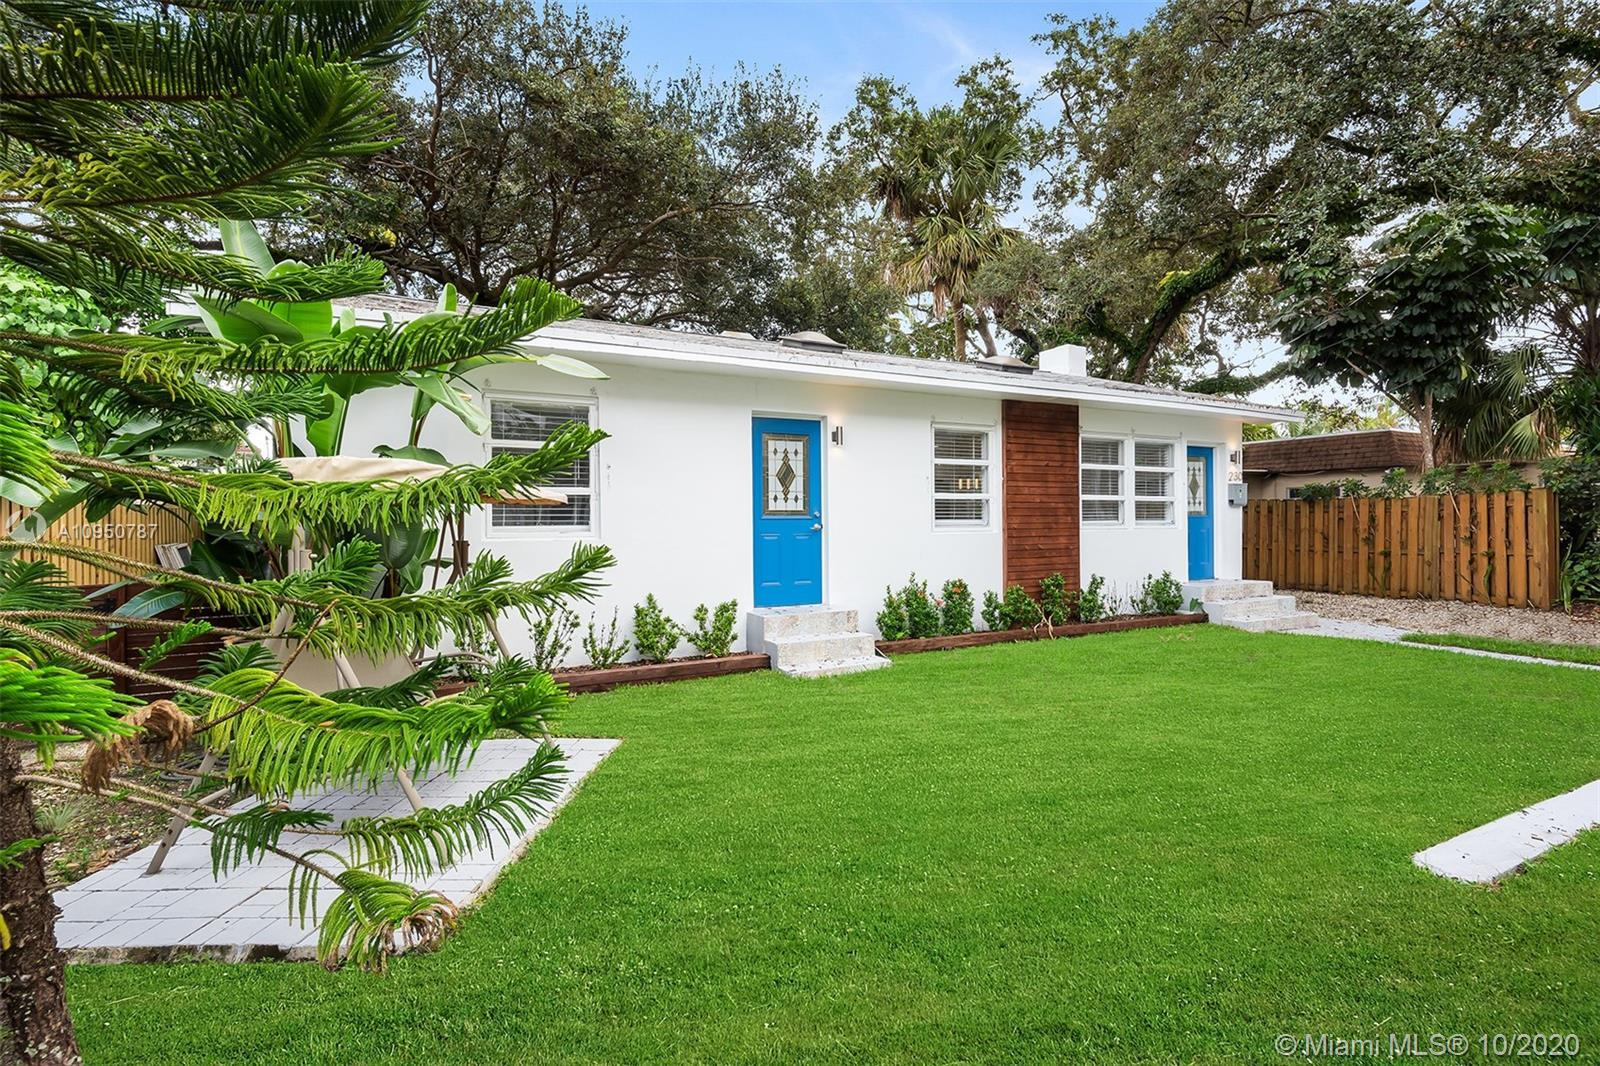 SINGLE FAMILY HOME IN DOWNTOWN FORT LAUDERDALE AT LAS OLAS BLVD*SAILBOAT BEND IS RANKED #1 AS THE BE